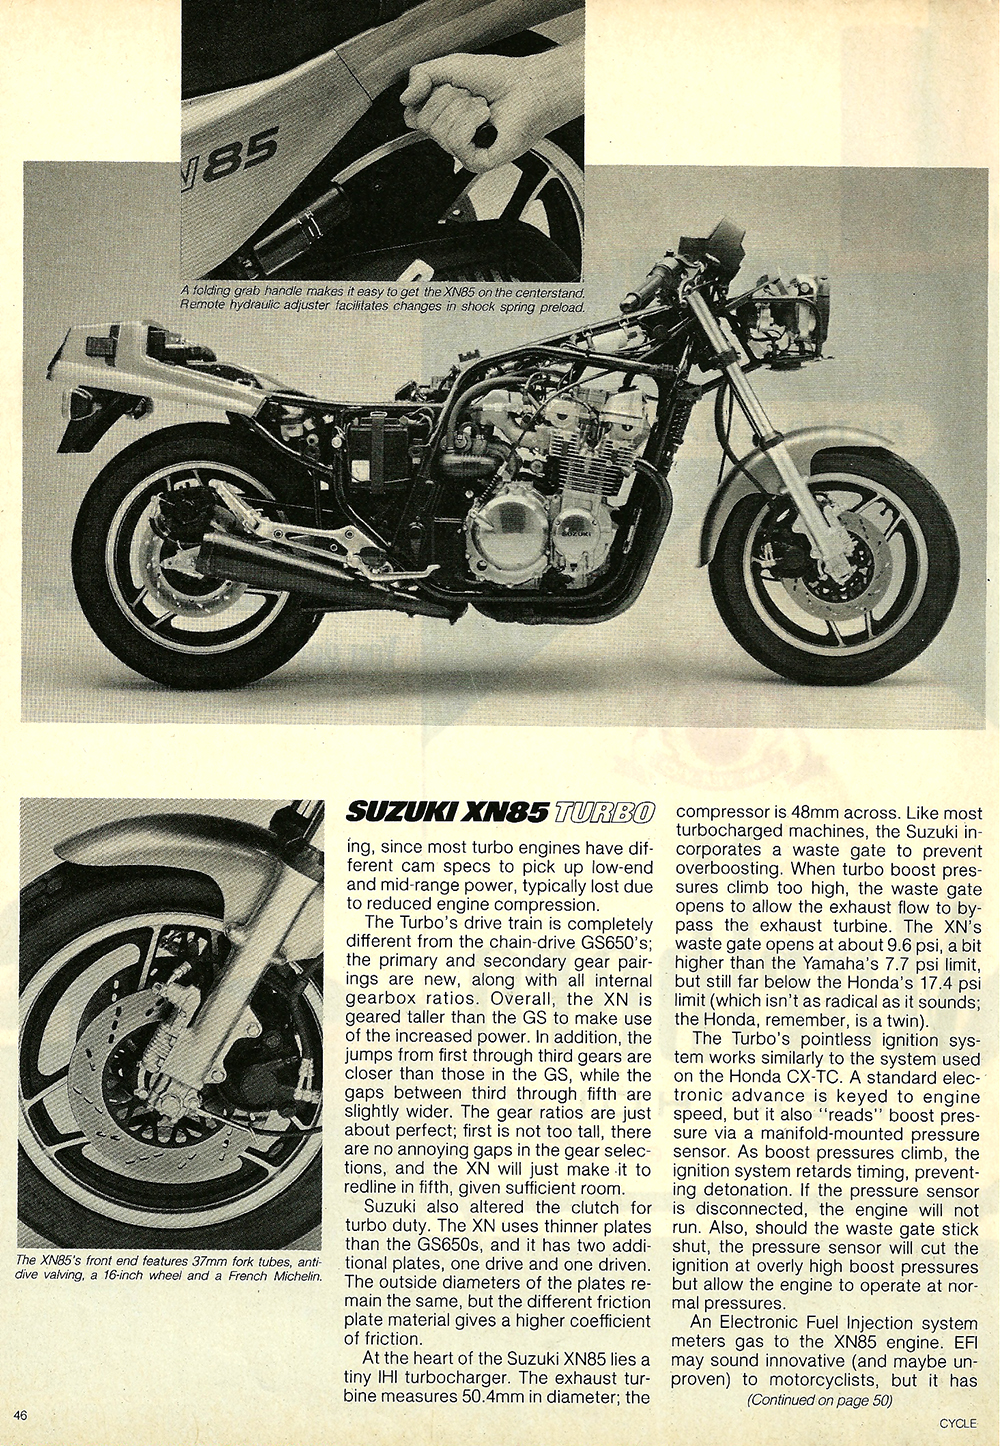 1983 Suzuki XN85 Turbo road test 7.jpg